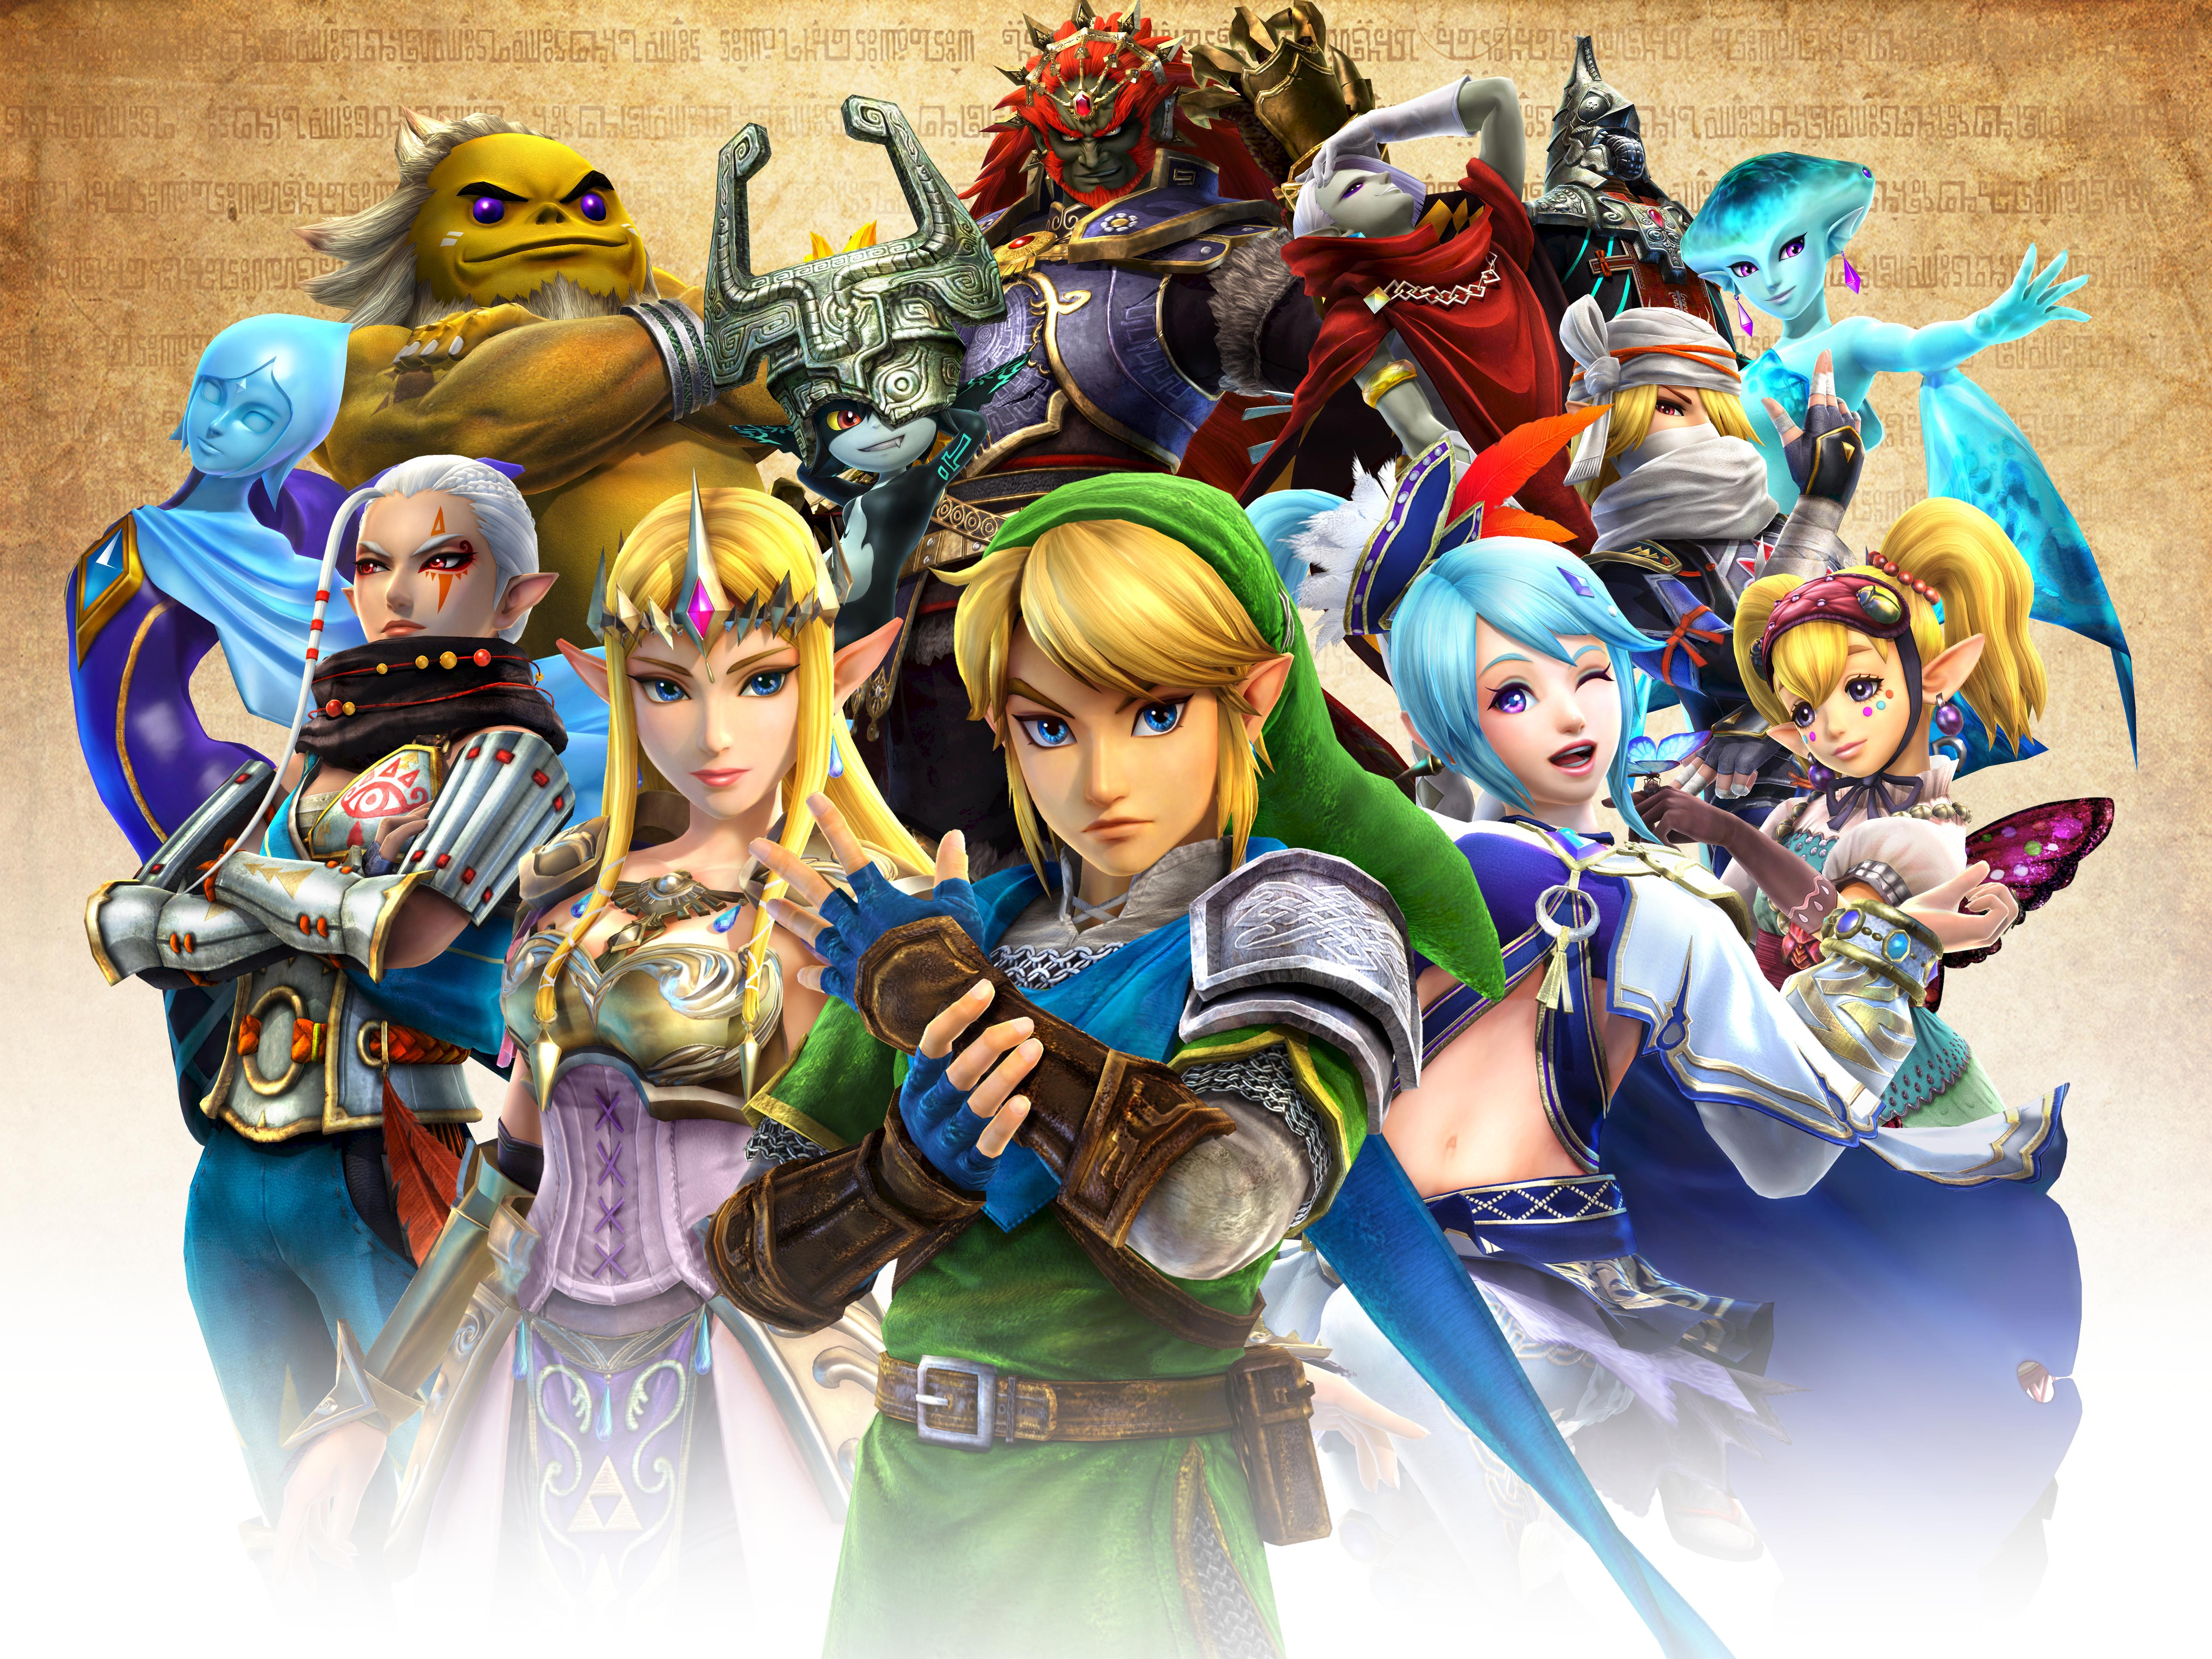 Battle Massive Armies With Legendary Characters In Hyrule Warriors For Wii U Business Wire